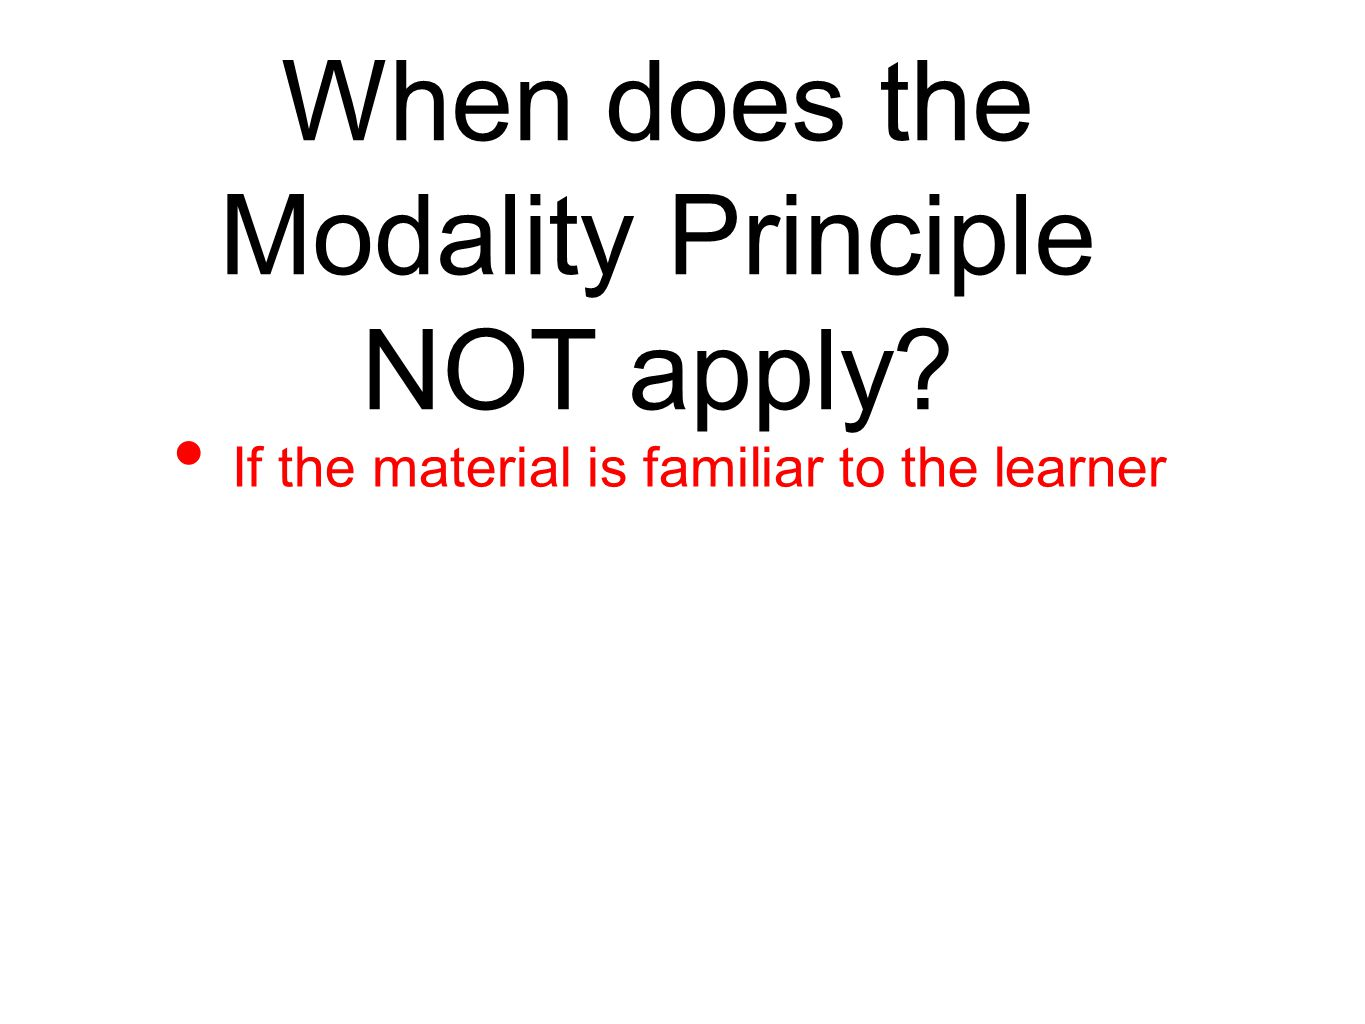 When does the Modality Principle NOT apply? If the material is familiar to the learner